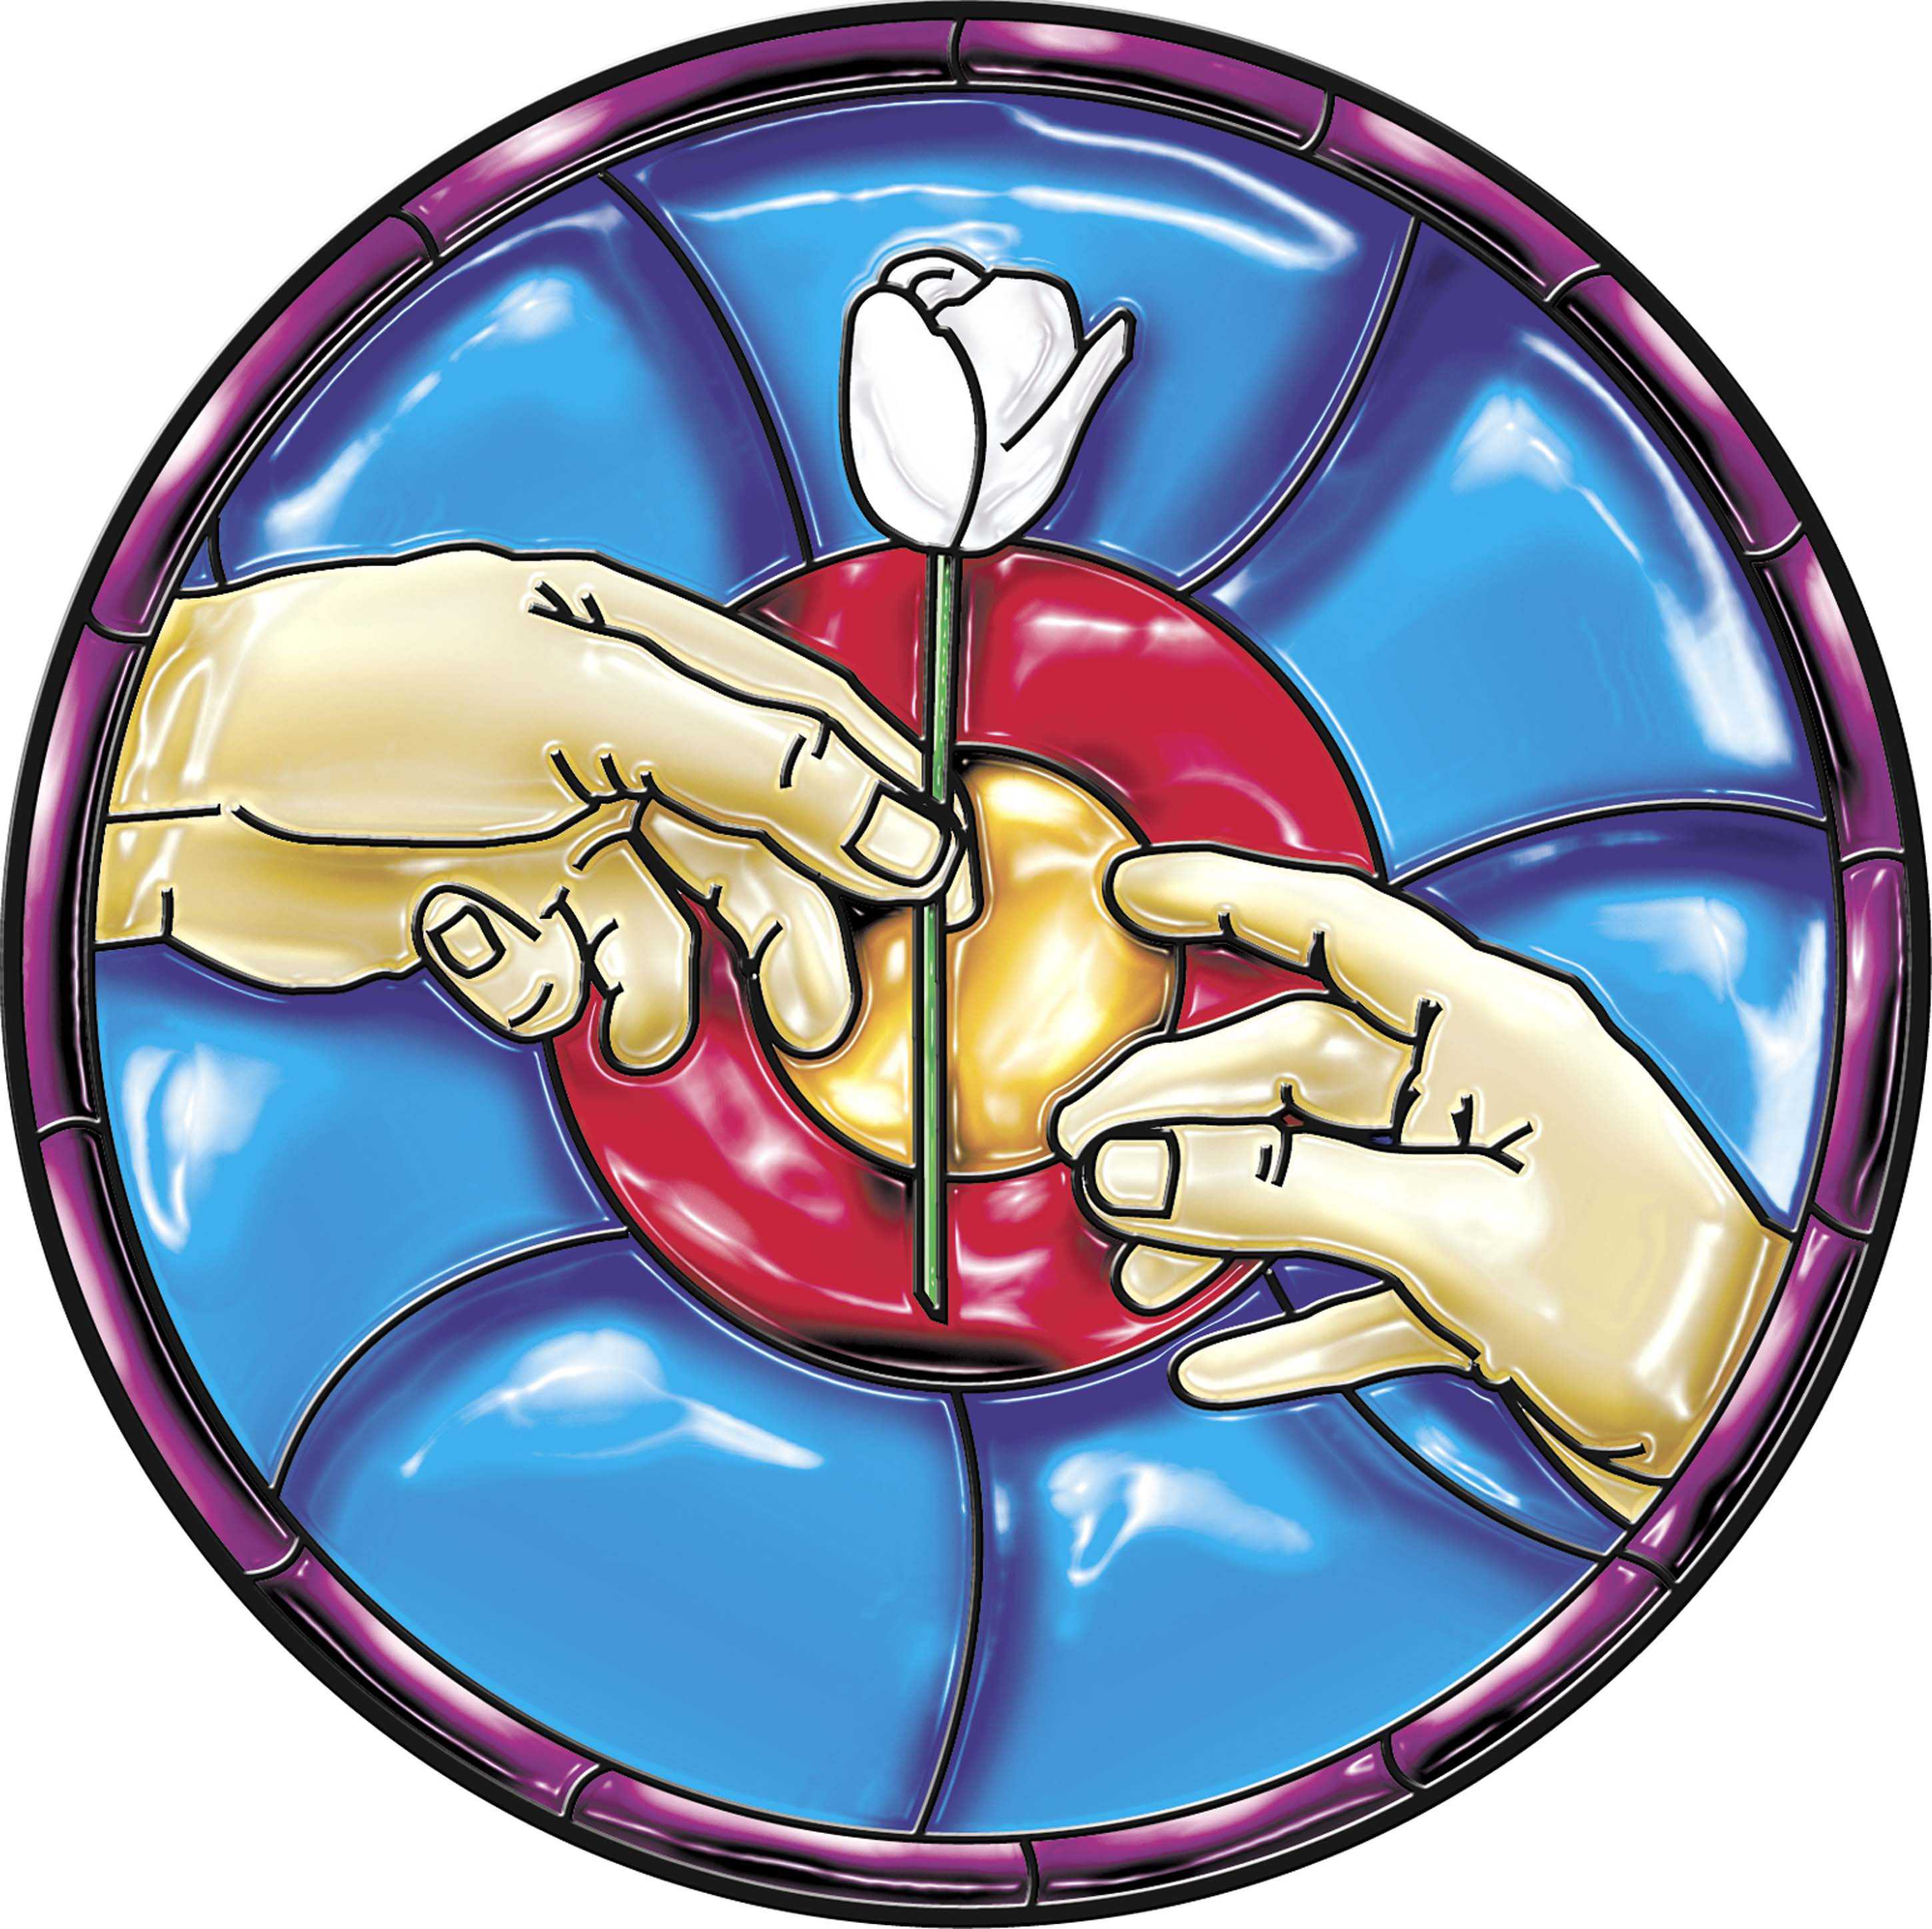 300 dpi Fred Matamoros color illustration of stained-glass image of one hand offering a white rose to another hand. The News Tribune (Tacoma, Wash.) 2007.